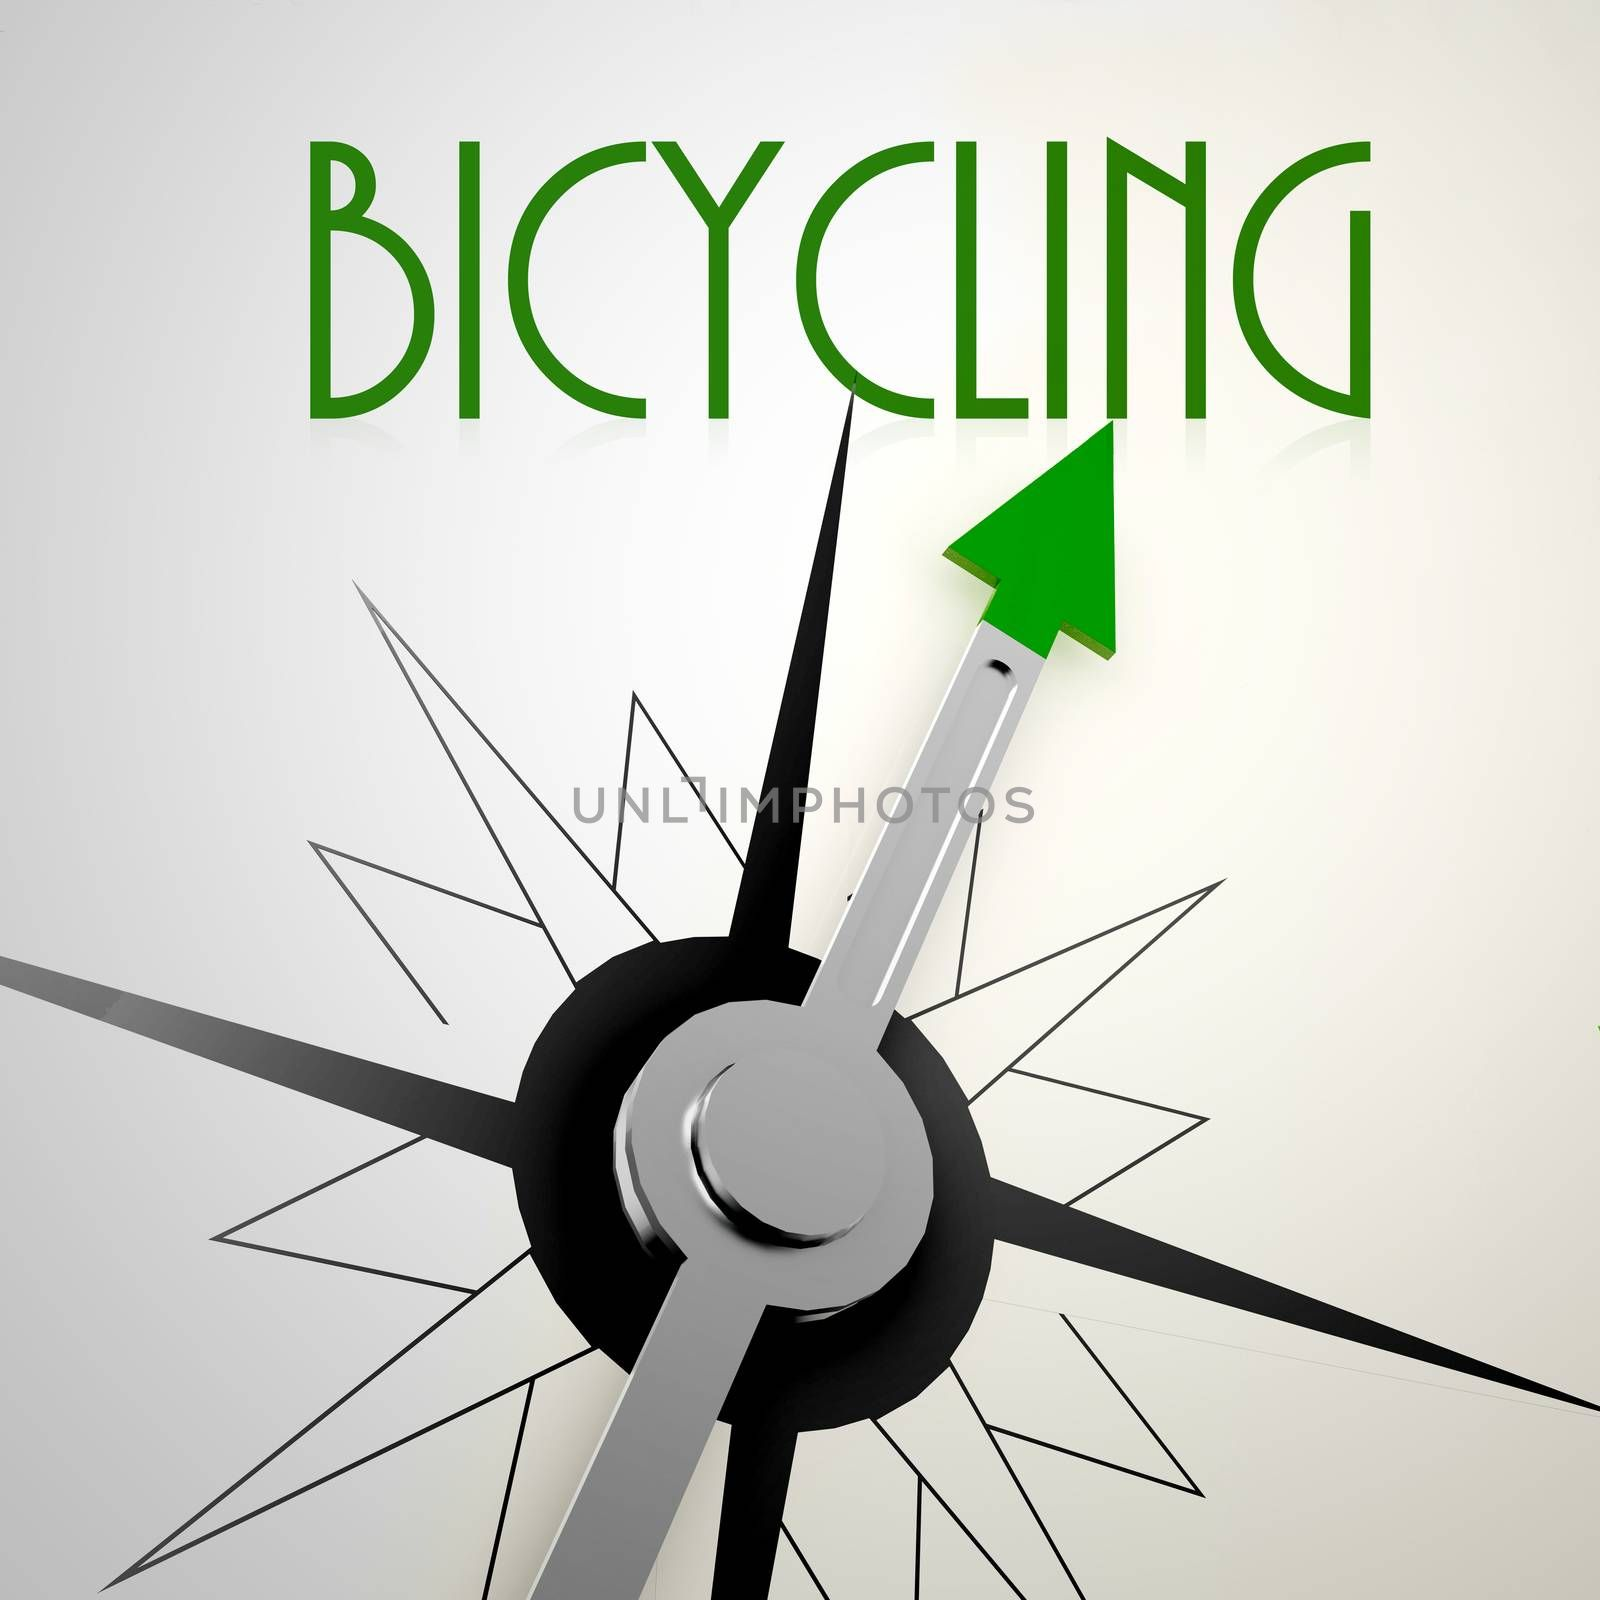 Bicycling on green compass. Concept of healthy lifestyle